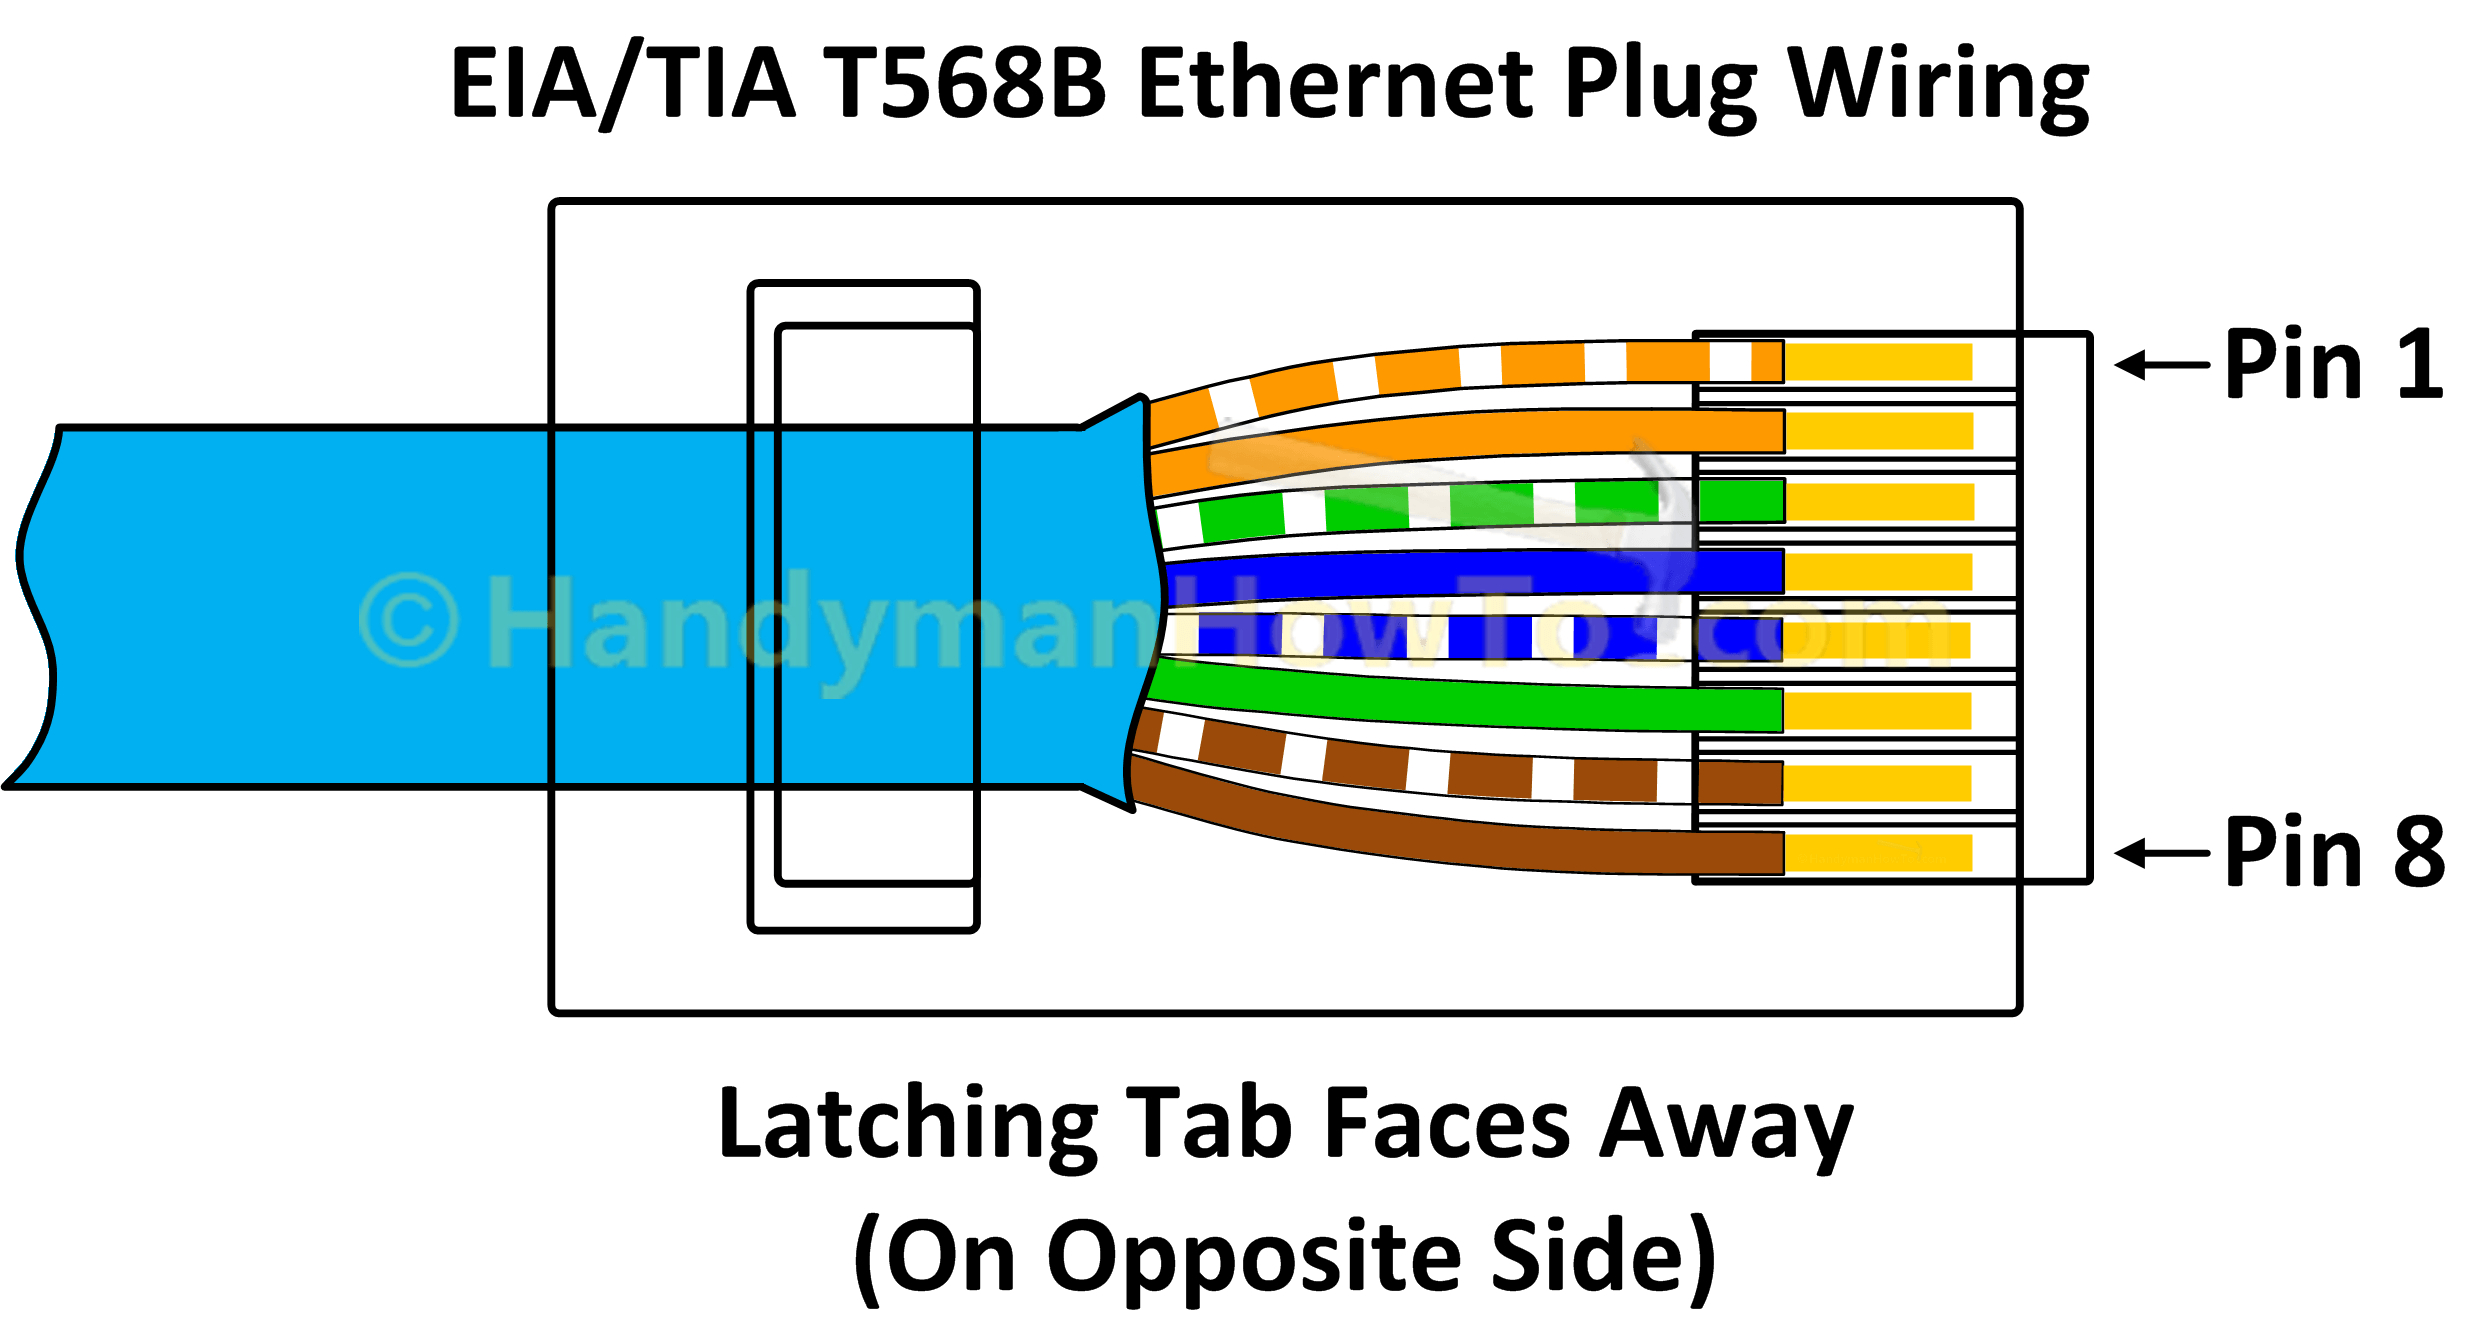 Cat 6 Plug Wiring - Data Wiring Diagram Site - Cat 6 Wiring Diagram